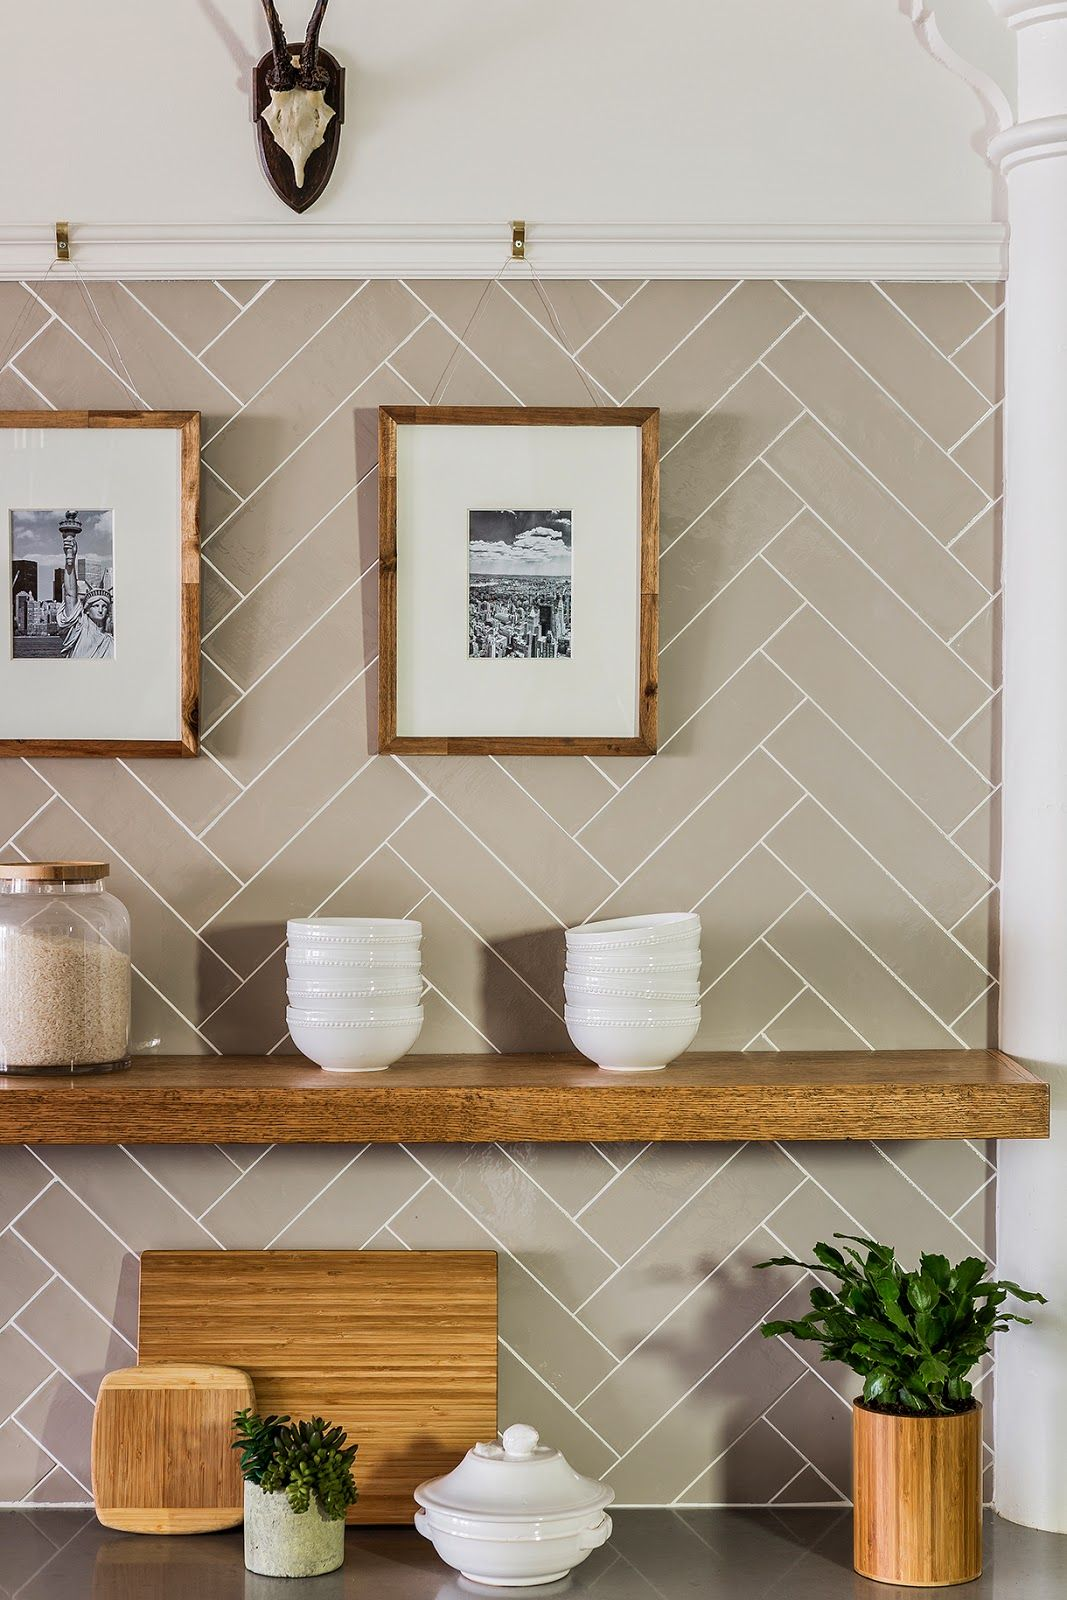 Subway tile in herringbone pattern sabbespot a leather district reclaimed wood shelves subway tile dailygadgetfo Images